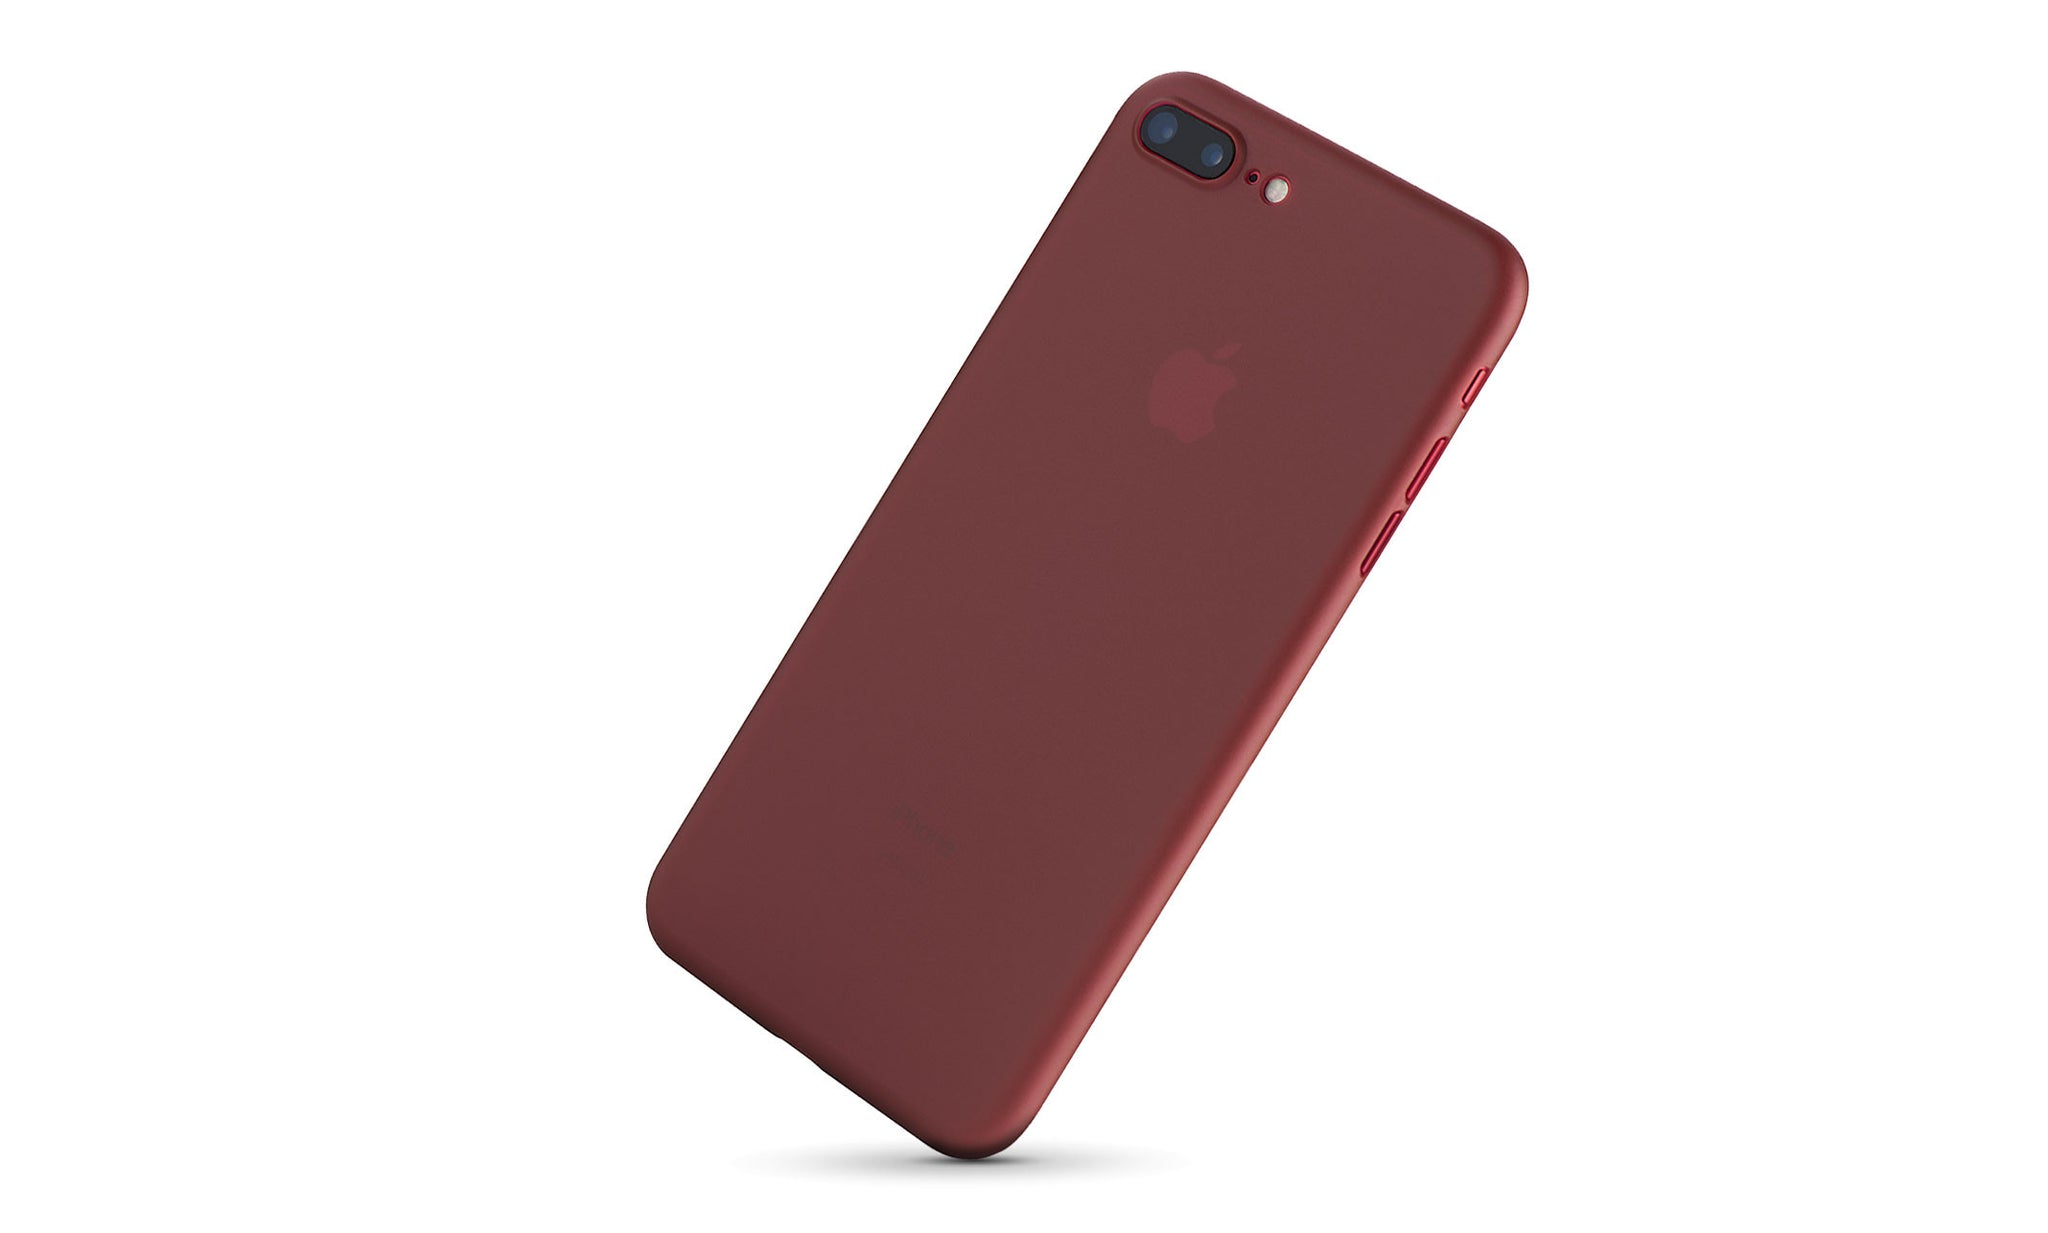 A thin red iPhone case on the red iPhone 7 plus